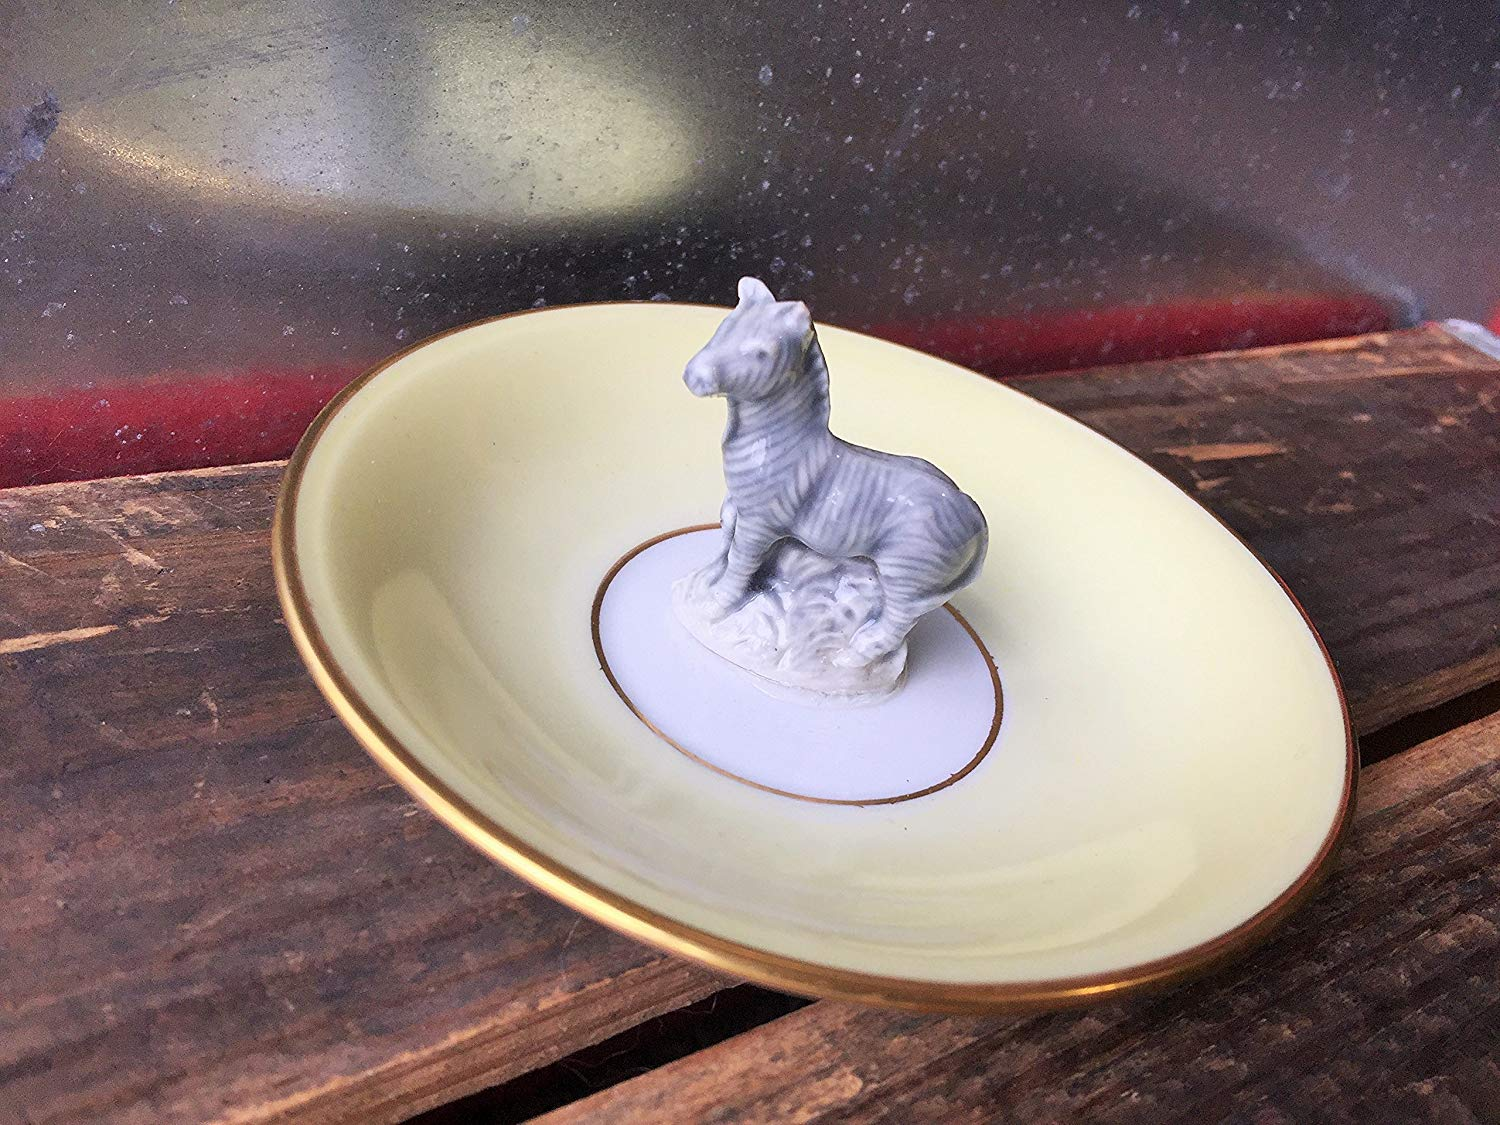 Zebra antique dish ring dish | Assemblage jewelry storage | Repurpose ring tray